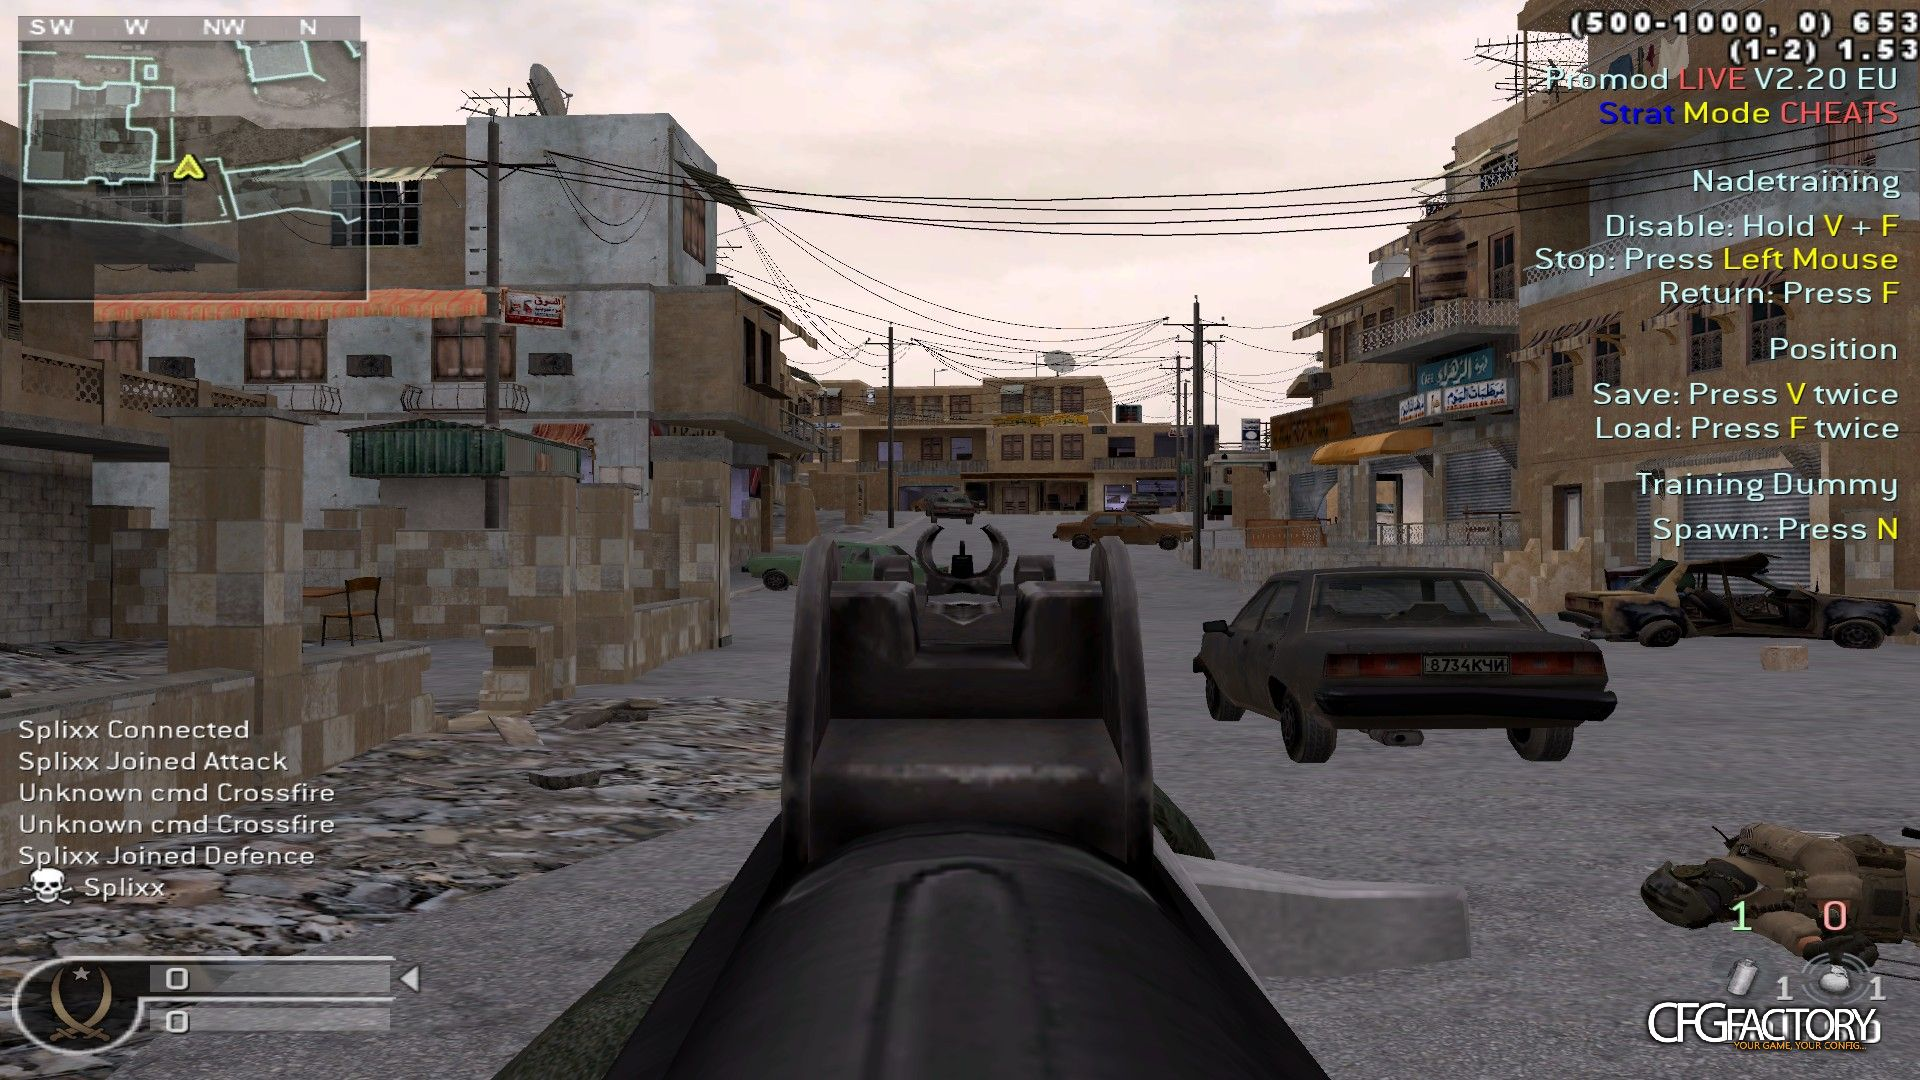 cod4, configs, splixx update v2.0 full fps , splixx